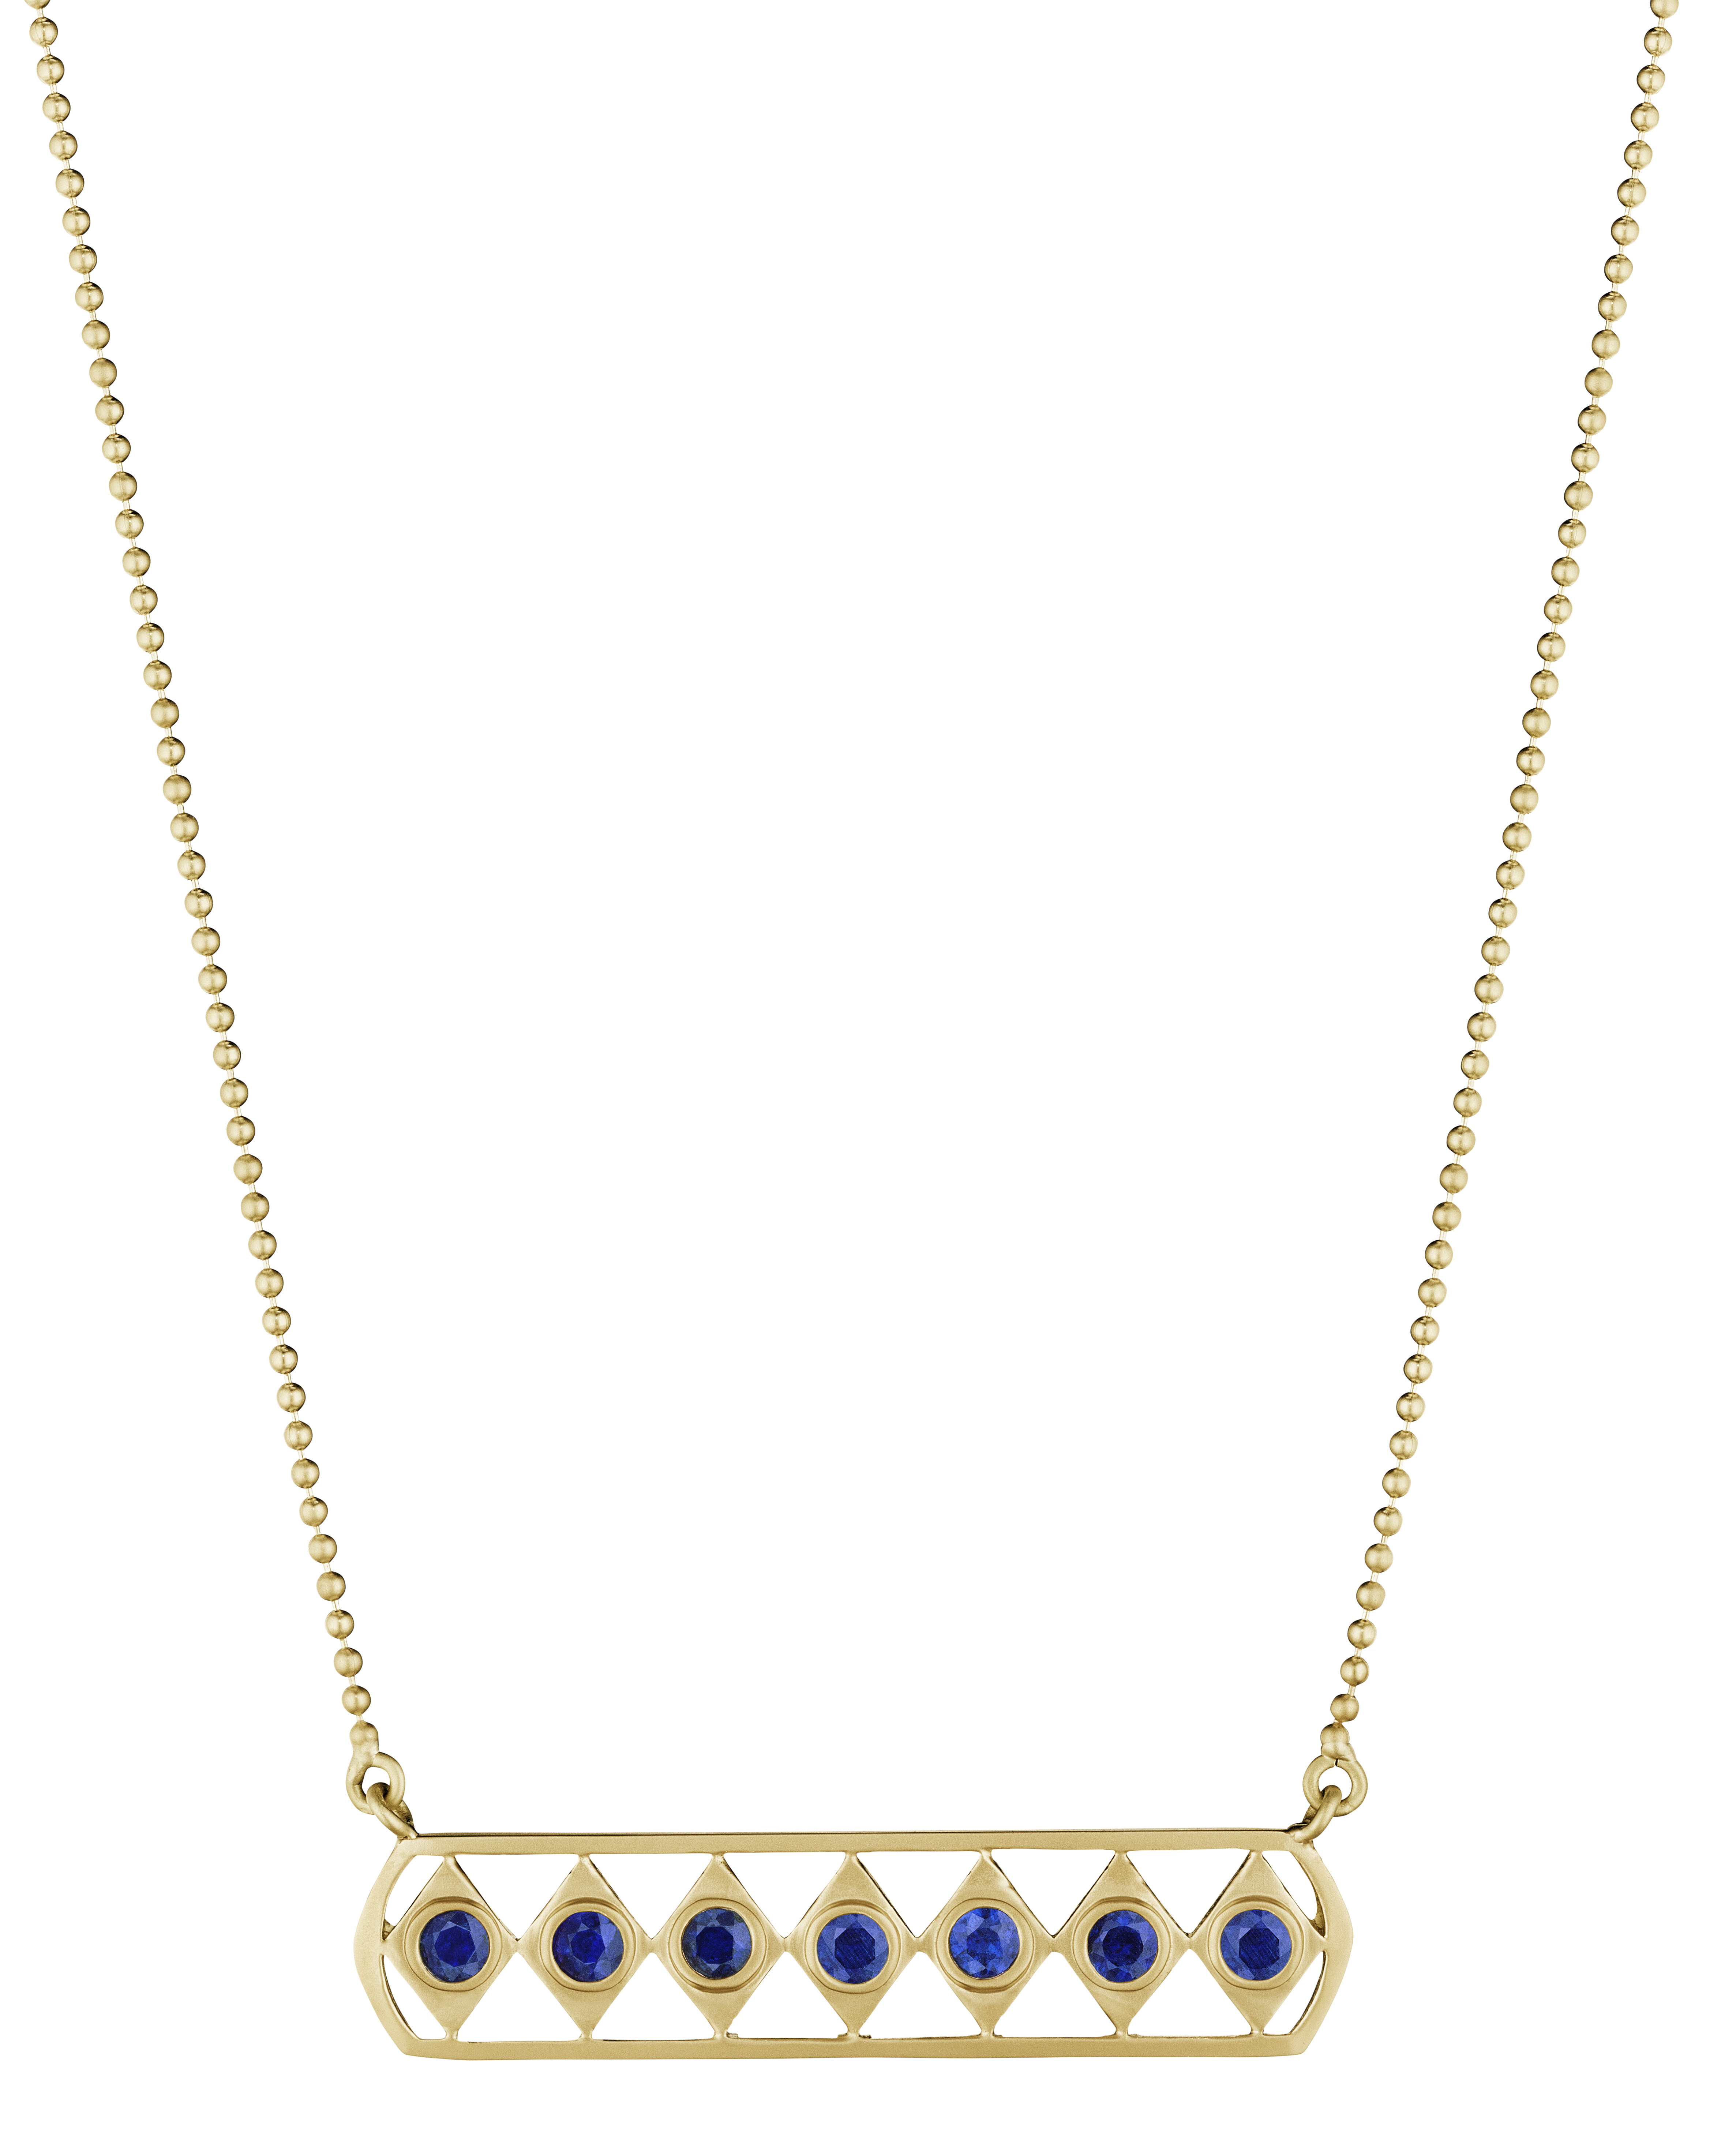 Doryn Wallach sapphire Gladiator necklace | JCK On Your Market